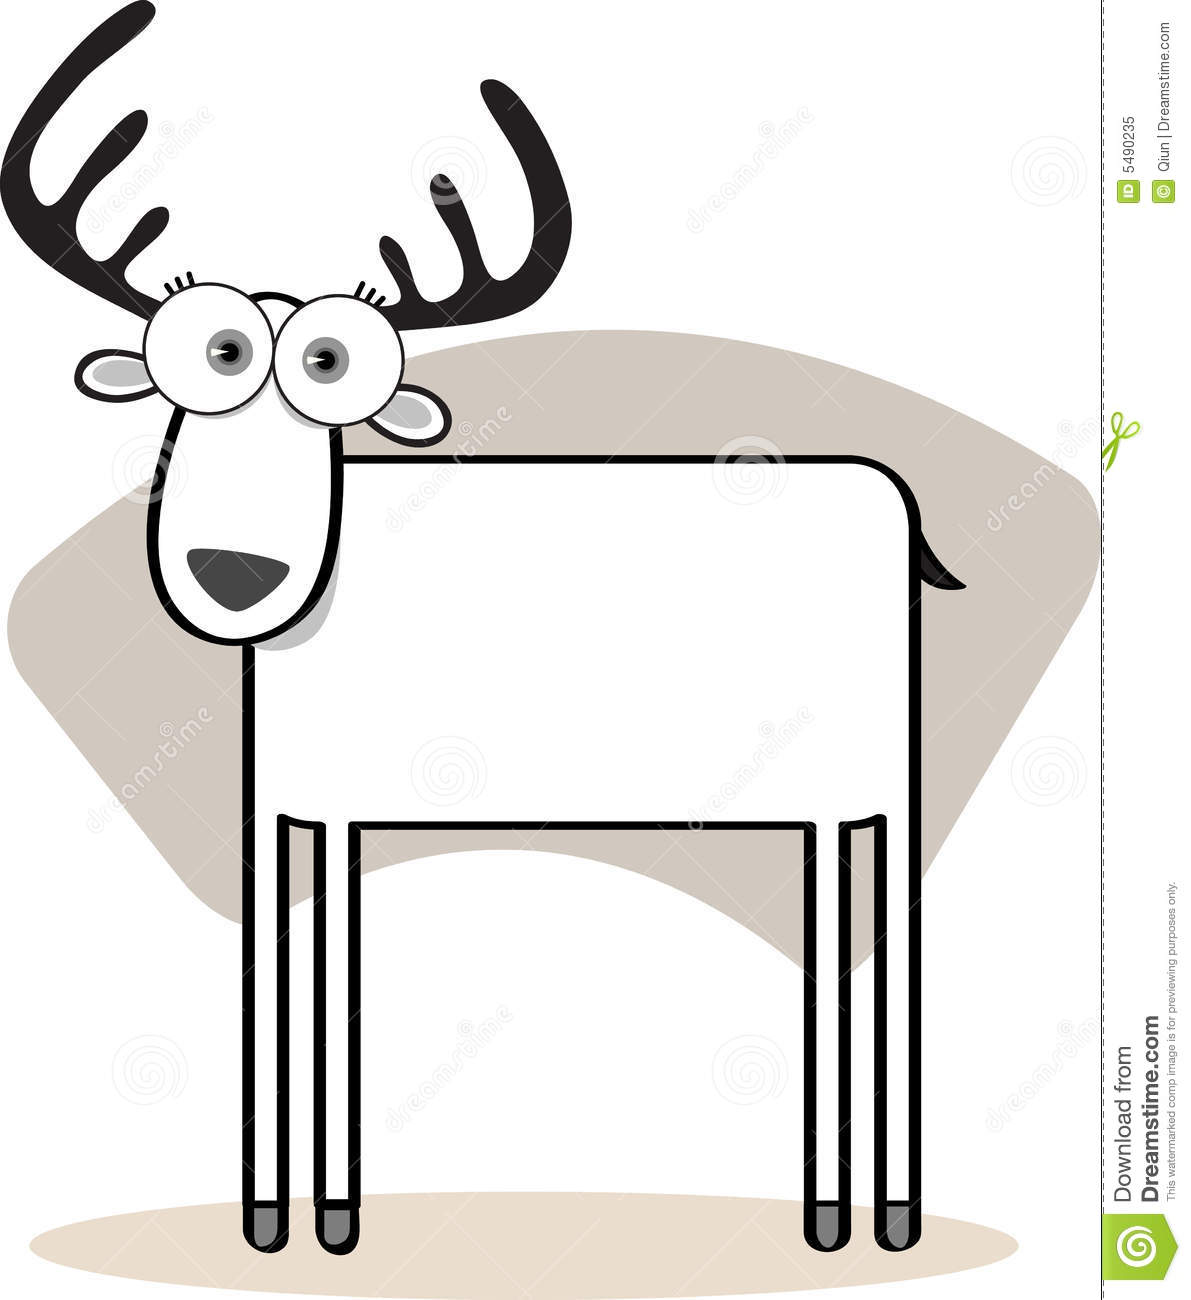 Cartoon Deer In Black And Whit Royalty Free Stock Photo - Image ...